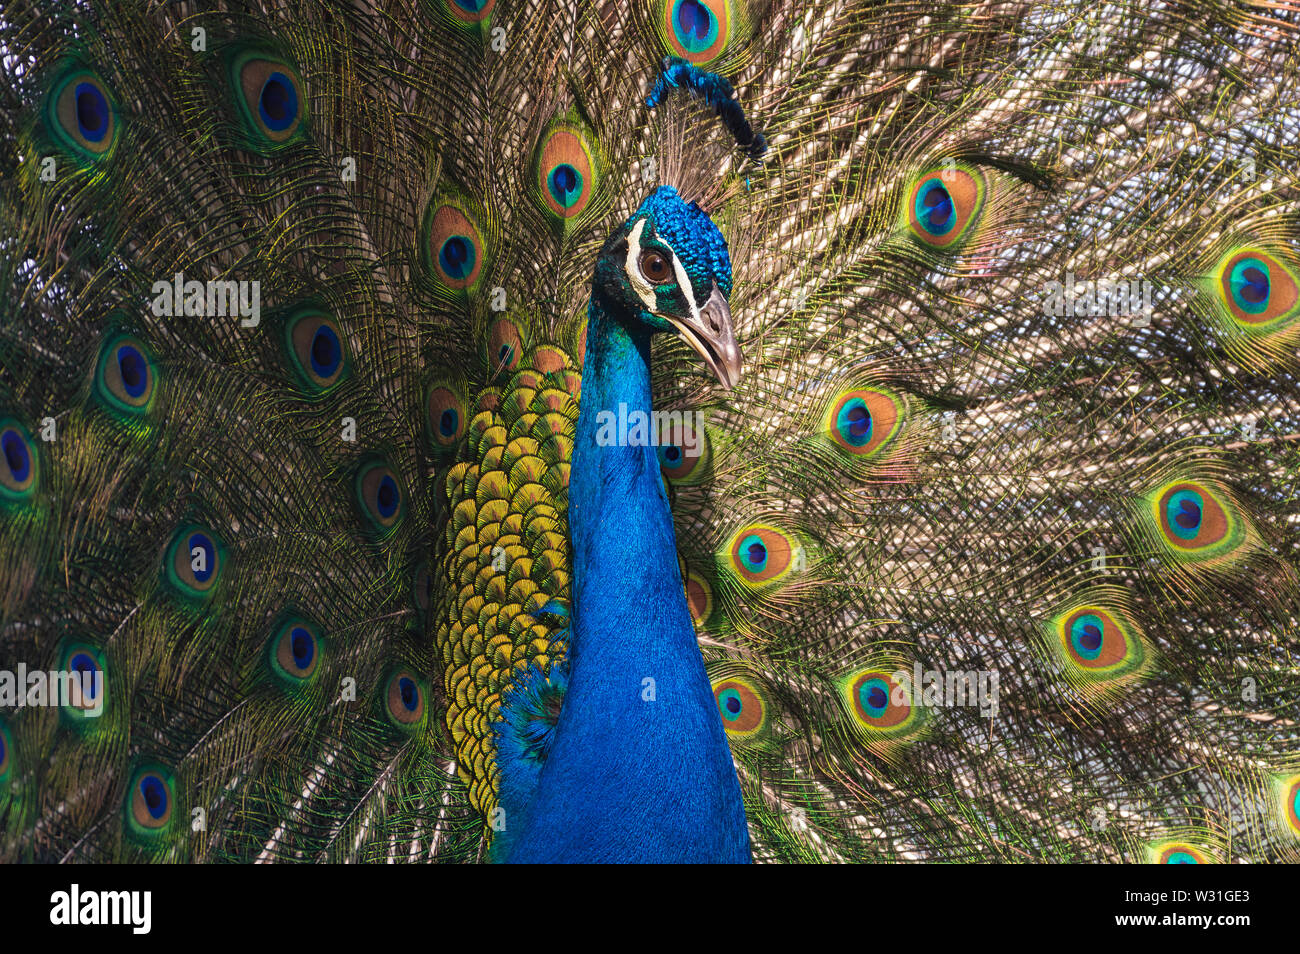 Image of a splendid Indian peacock (Pavo cristatus) fanning out its tail feathers. Stock Photo